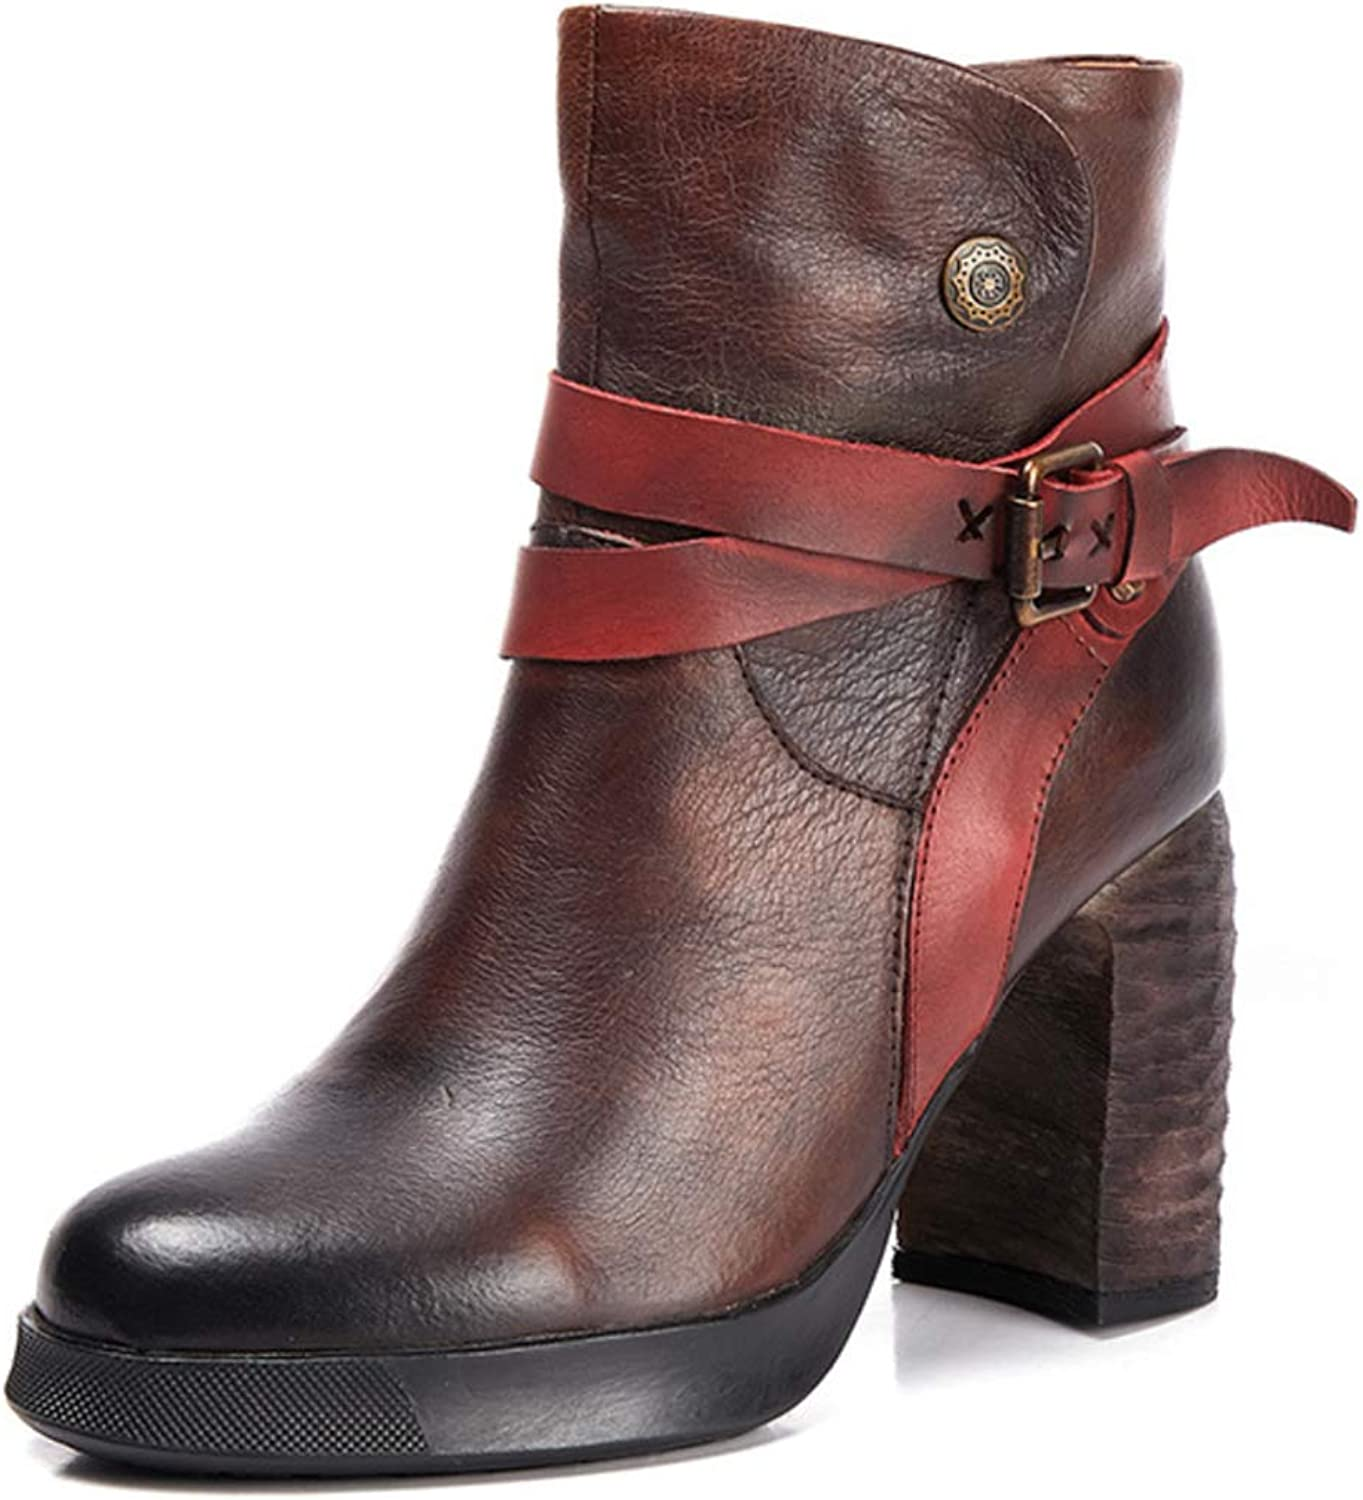 Women Martin Boots Leather high Heel Round Head Thick with Boots Side Zipper Belt Buckle Waterproof Metal Decorative Retro Style New Boots